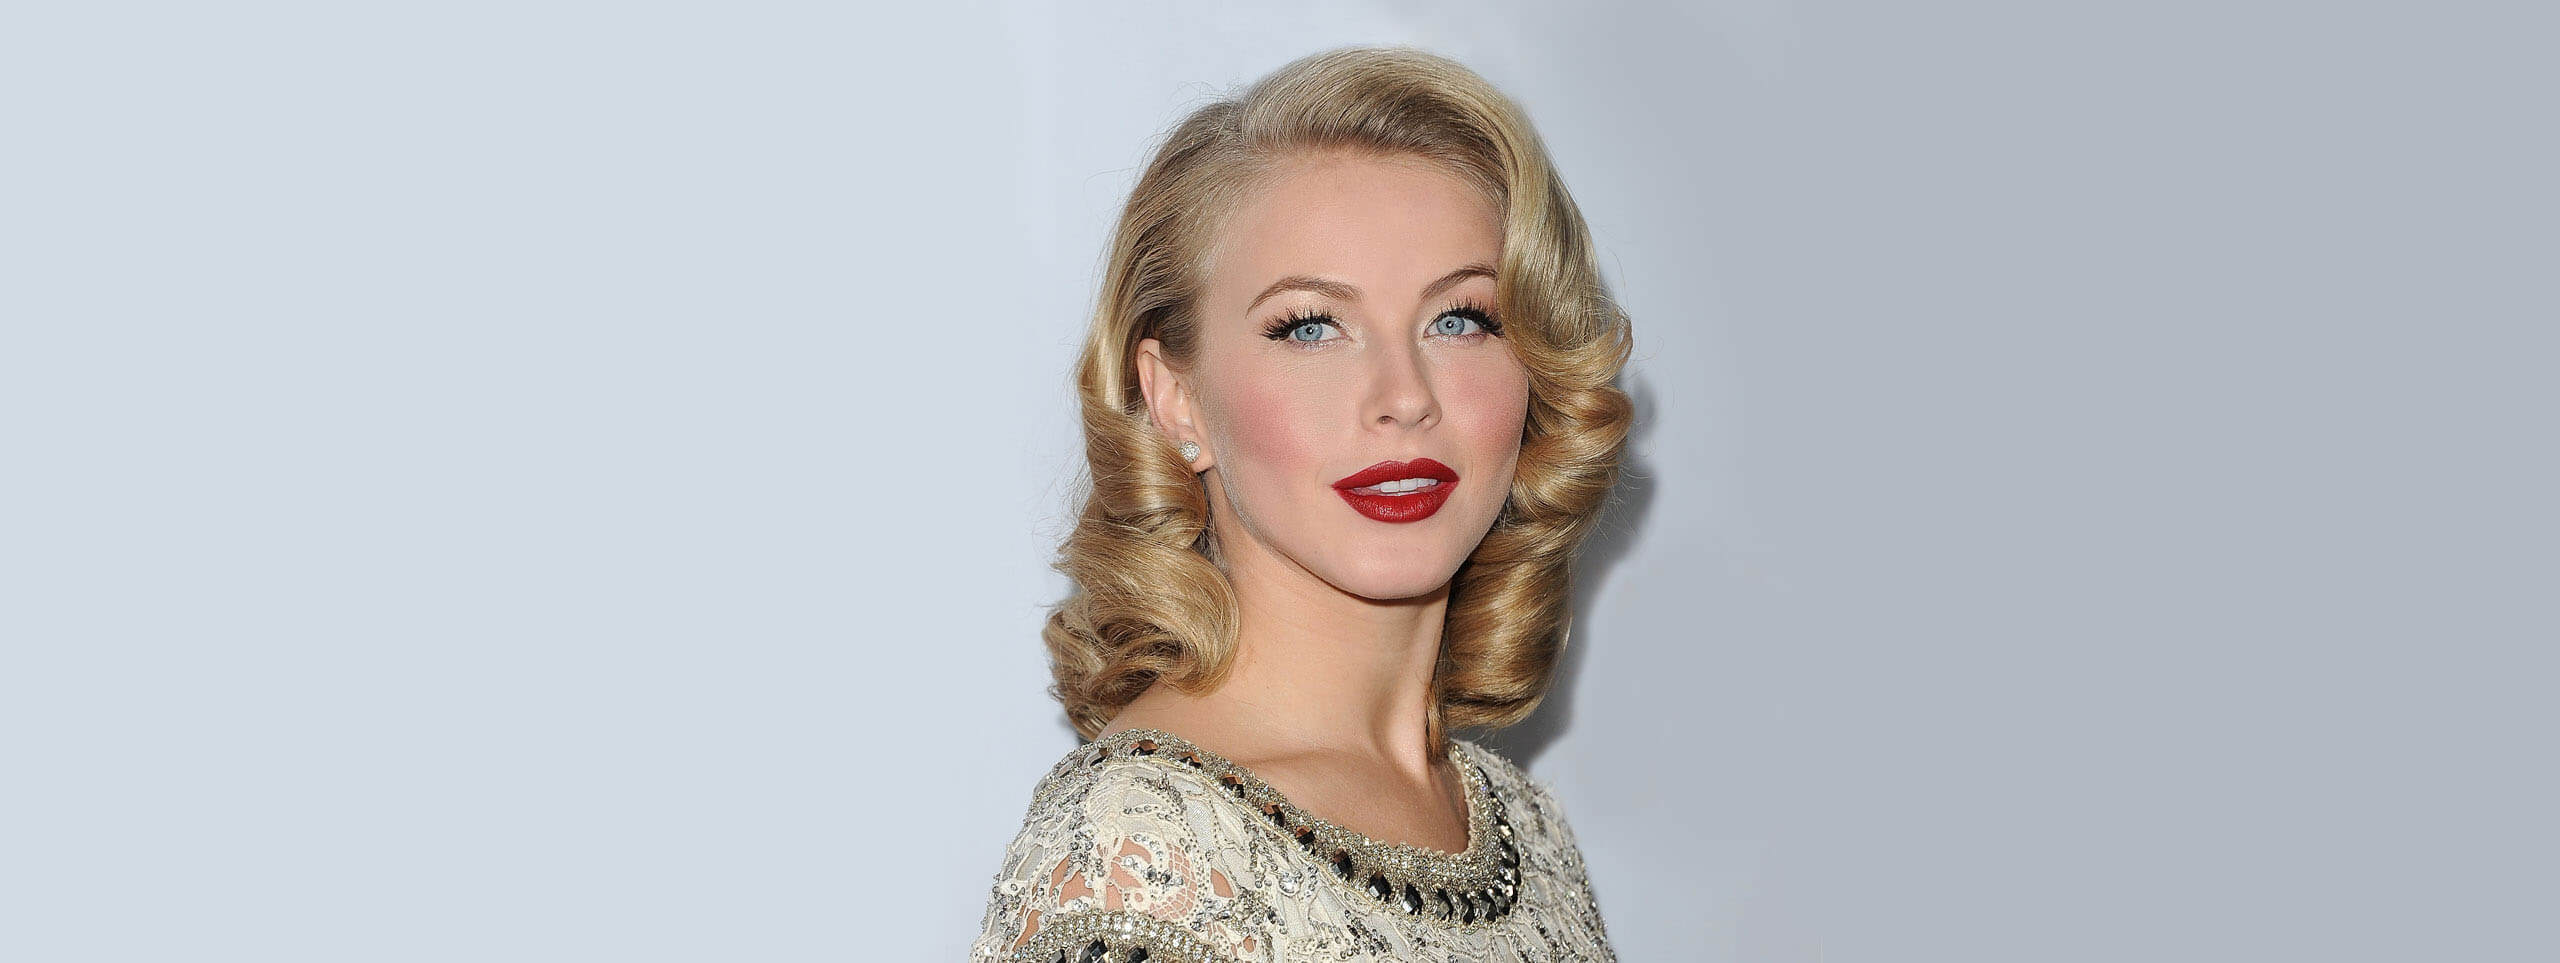 Julianne Hough with vintage curly hairstyle